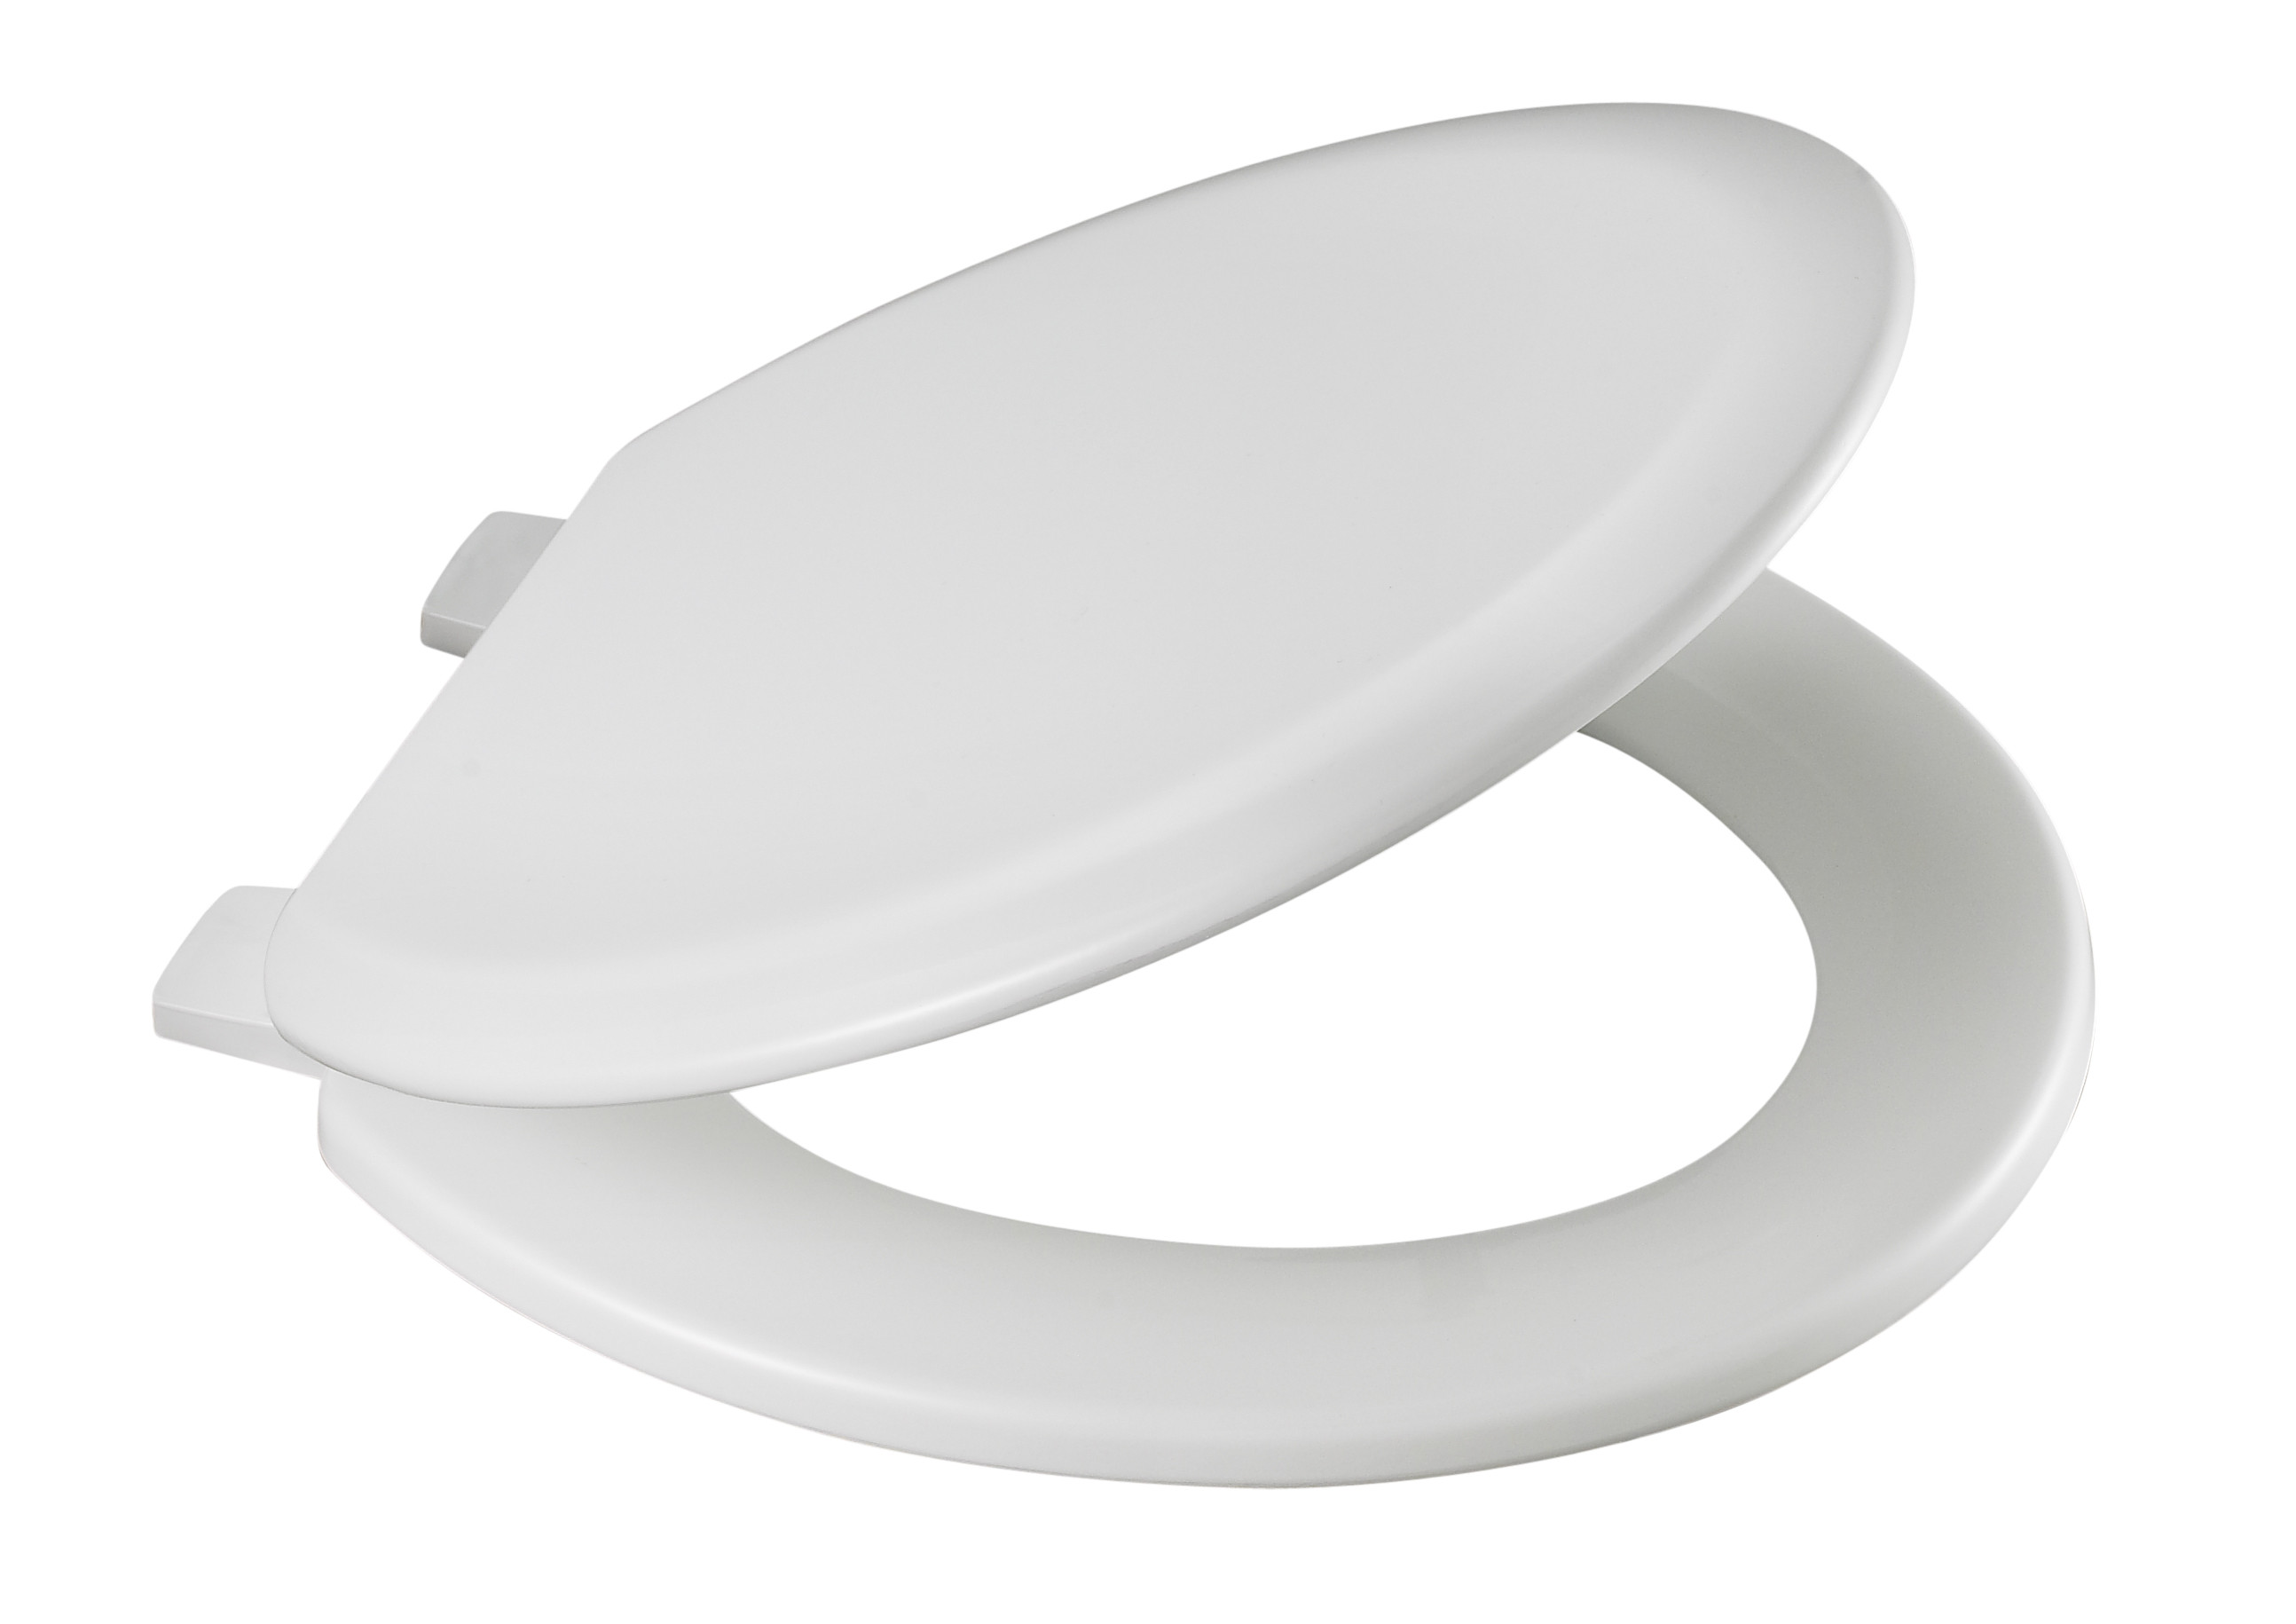 Bemis 5000 Plain Toilet Seat White